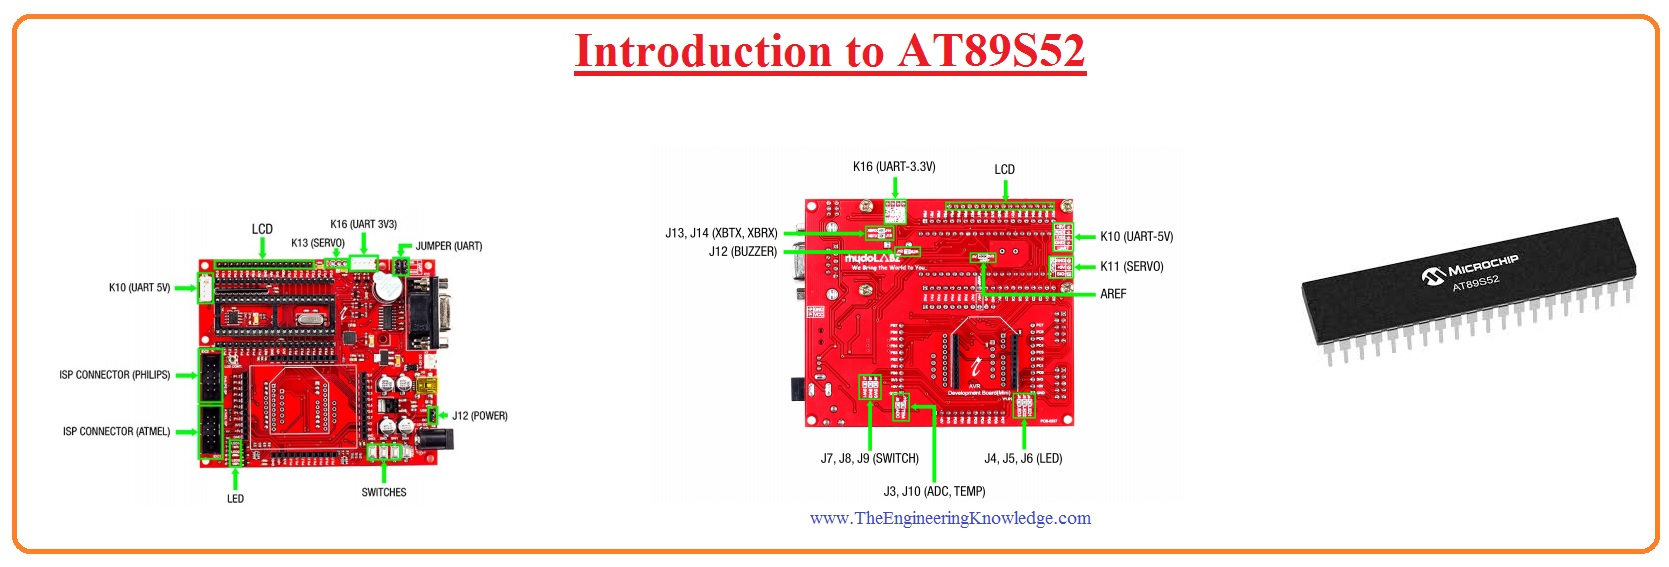 Introduction to AT89S52 AT89S52 pinout, AT89S52 features, AT89S52 working, AT89S52 application, AT89S52 block diagram